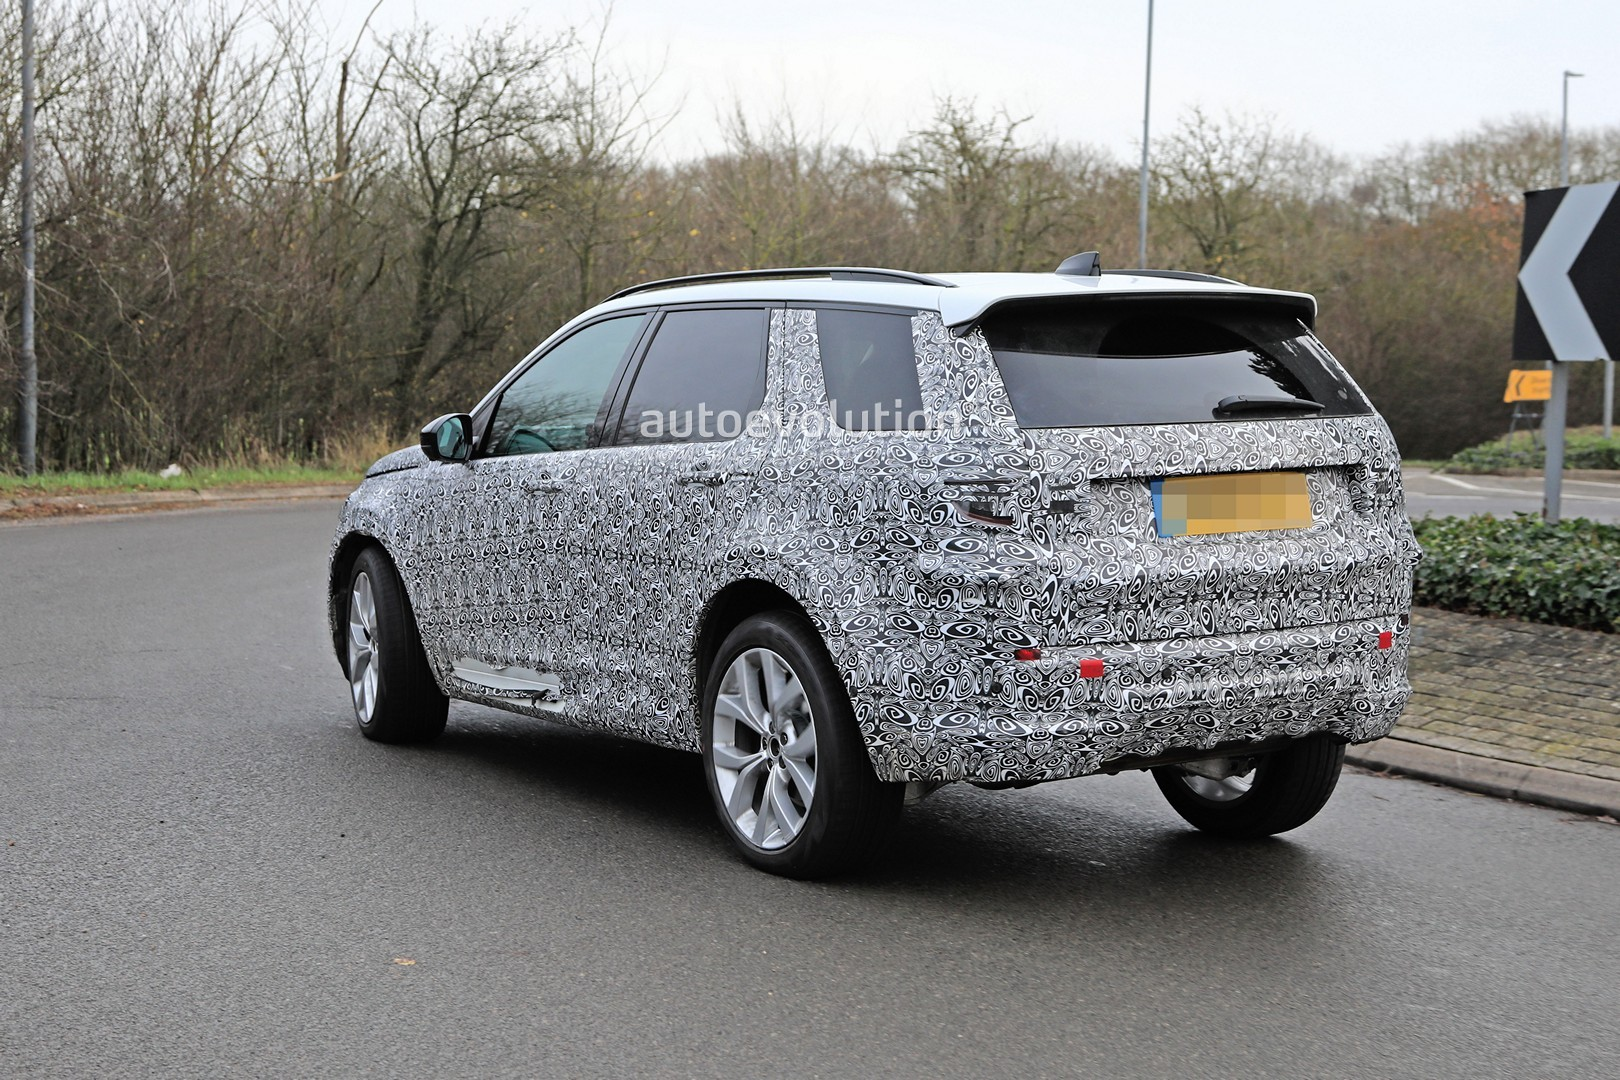 Range Rover Sport Gets Inch Vossen Cvt Wheels Video Photo Gallery likewise Superobd Skp Hand Held Key Programmer in addition Land Rover Discovery Land Rover Lr Spied Reveals More Skin likewise D Coolant Pipes Hoses Detail together with Maxresdefault. on 2017 land rover discovery sport